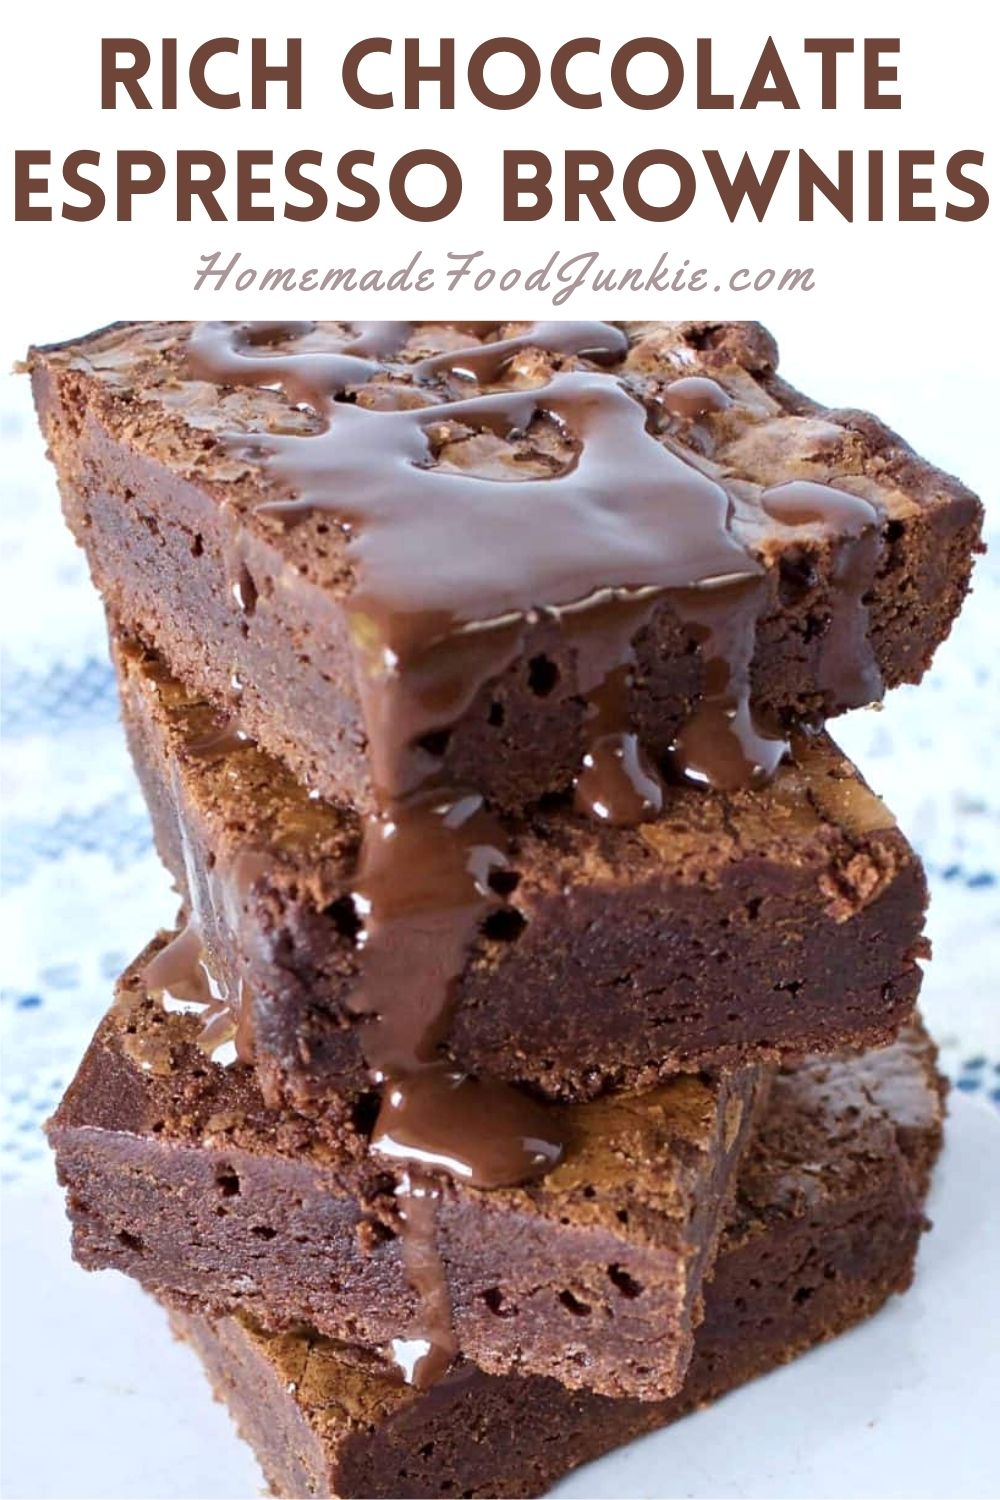 Rich chocolate espresso brownies-pin image